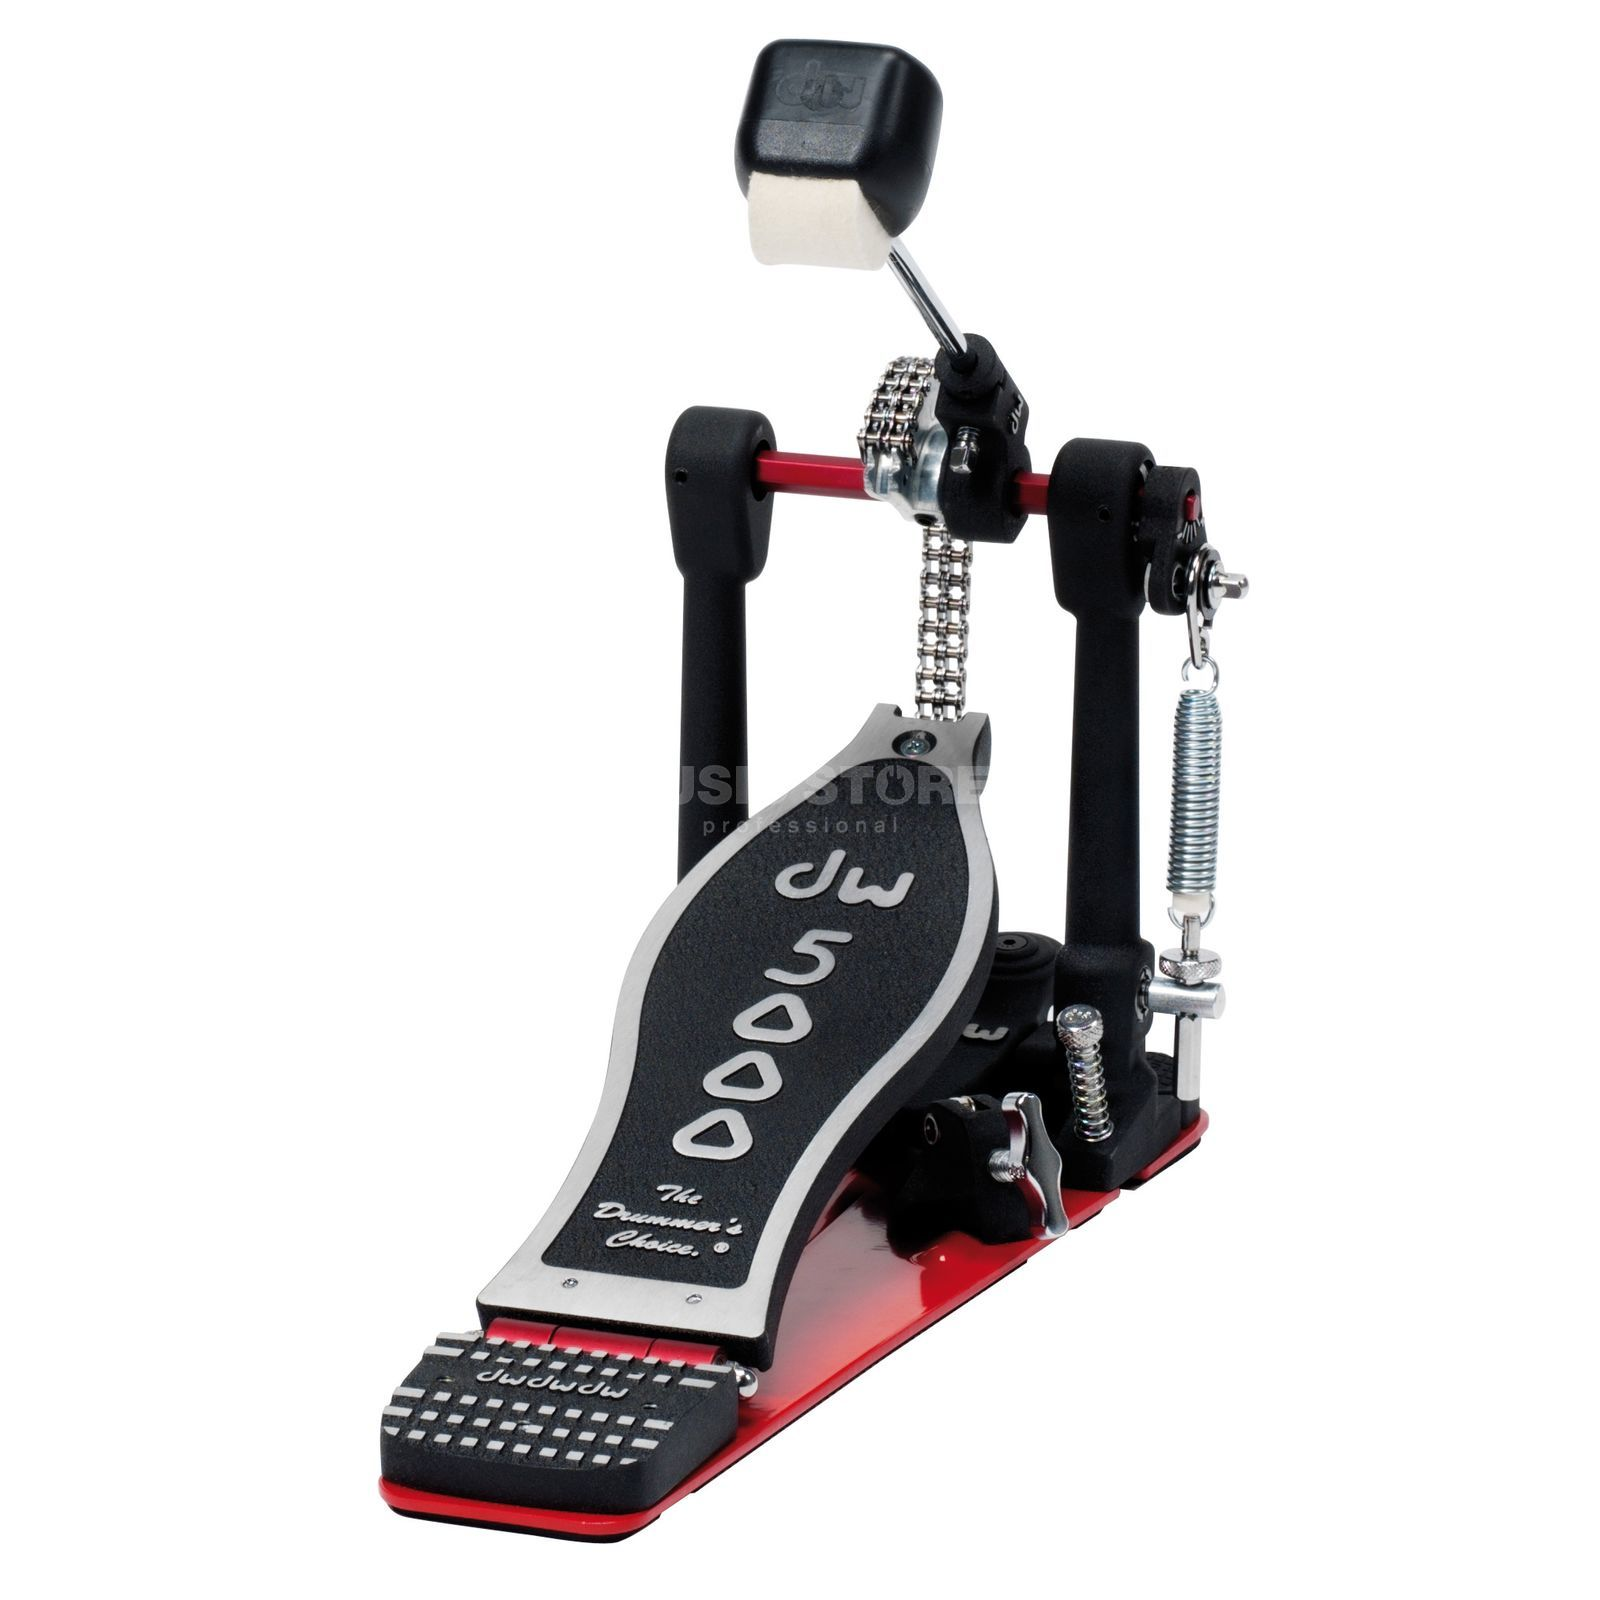 Drum Workshop Kick Pedal 5000TD4, Turbo Product Image